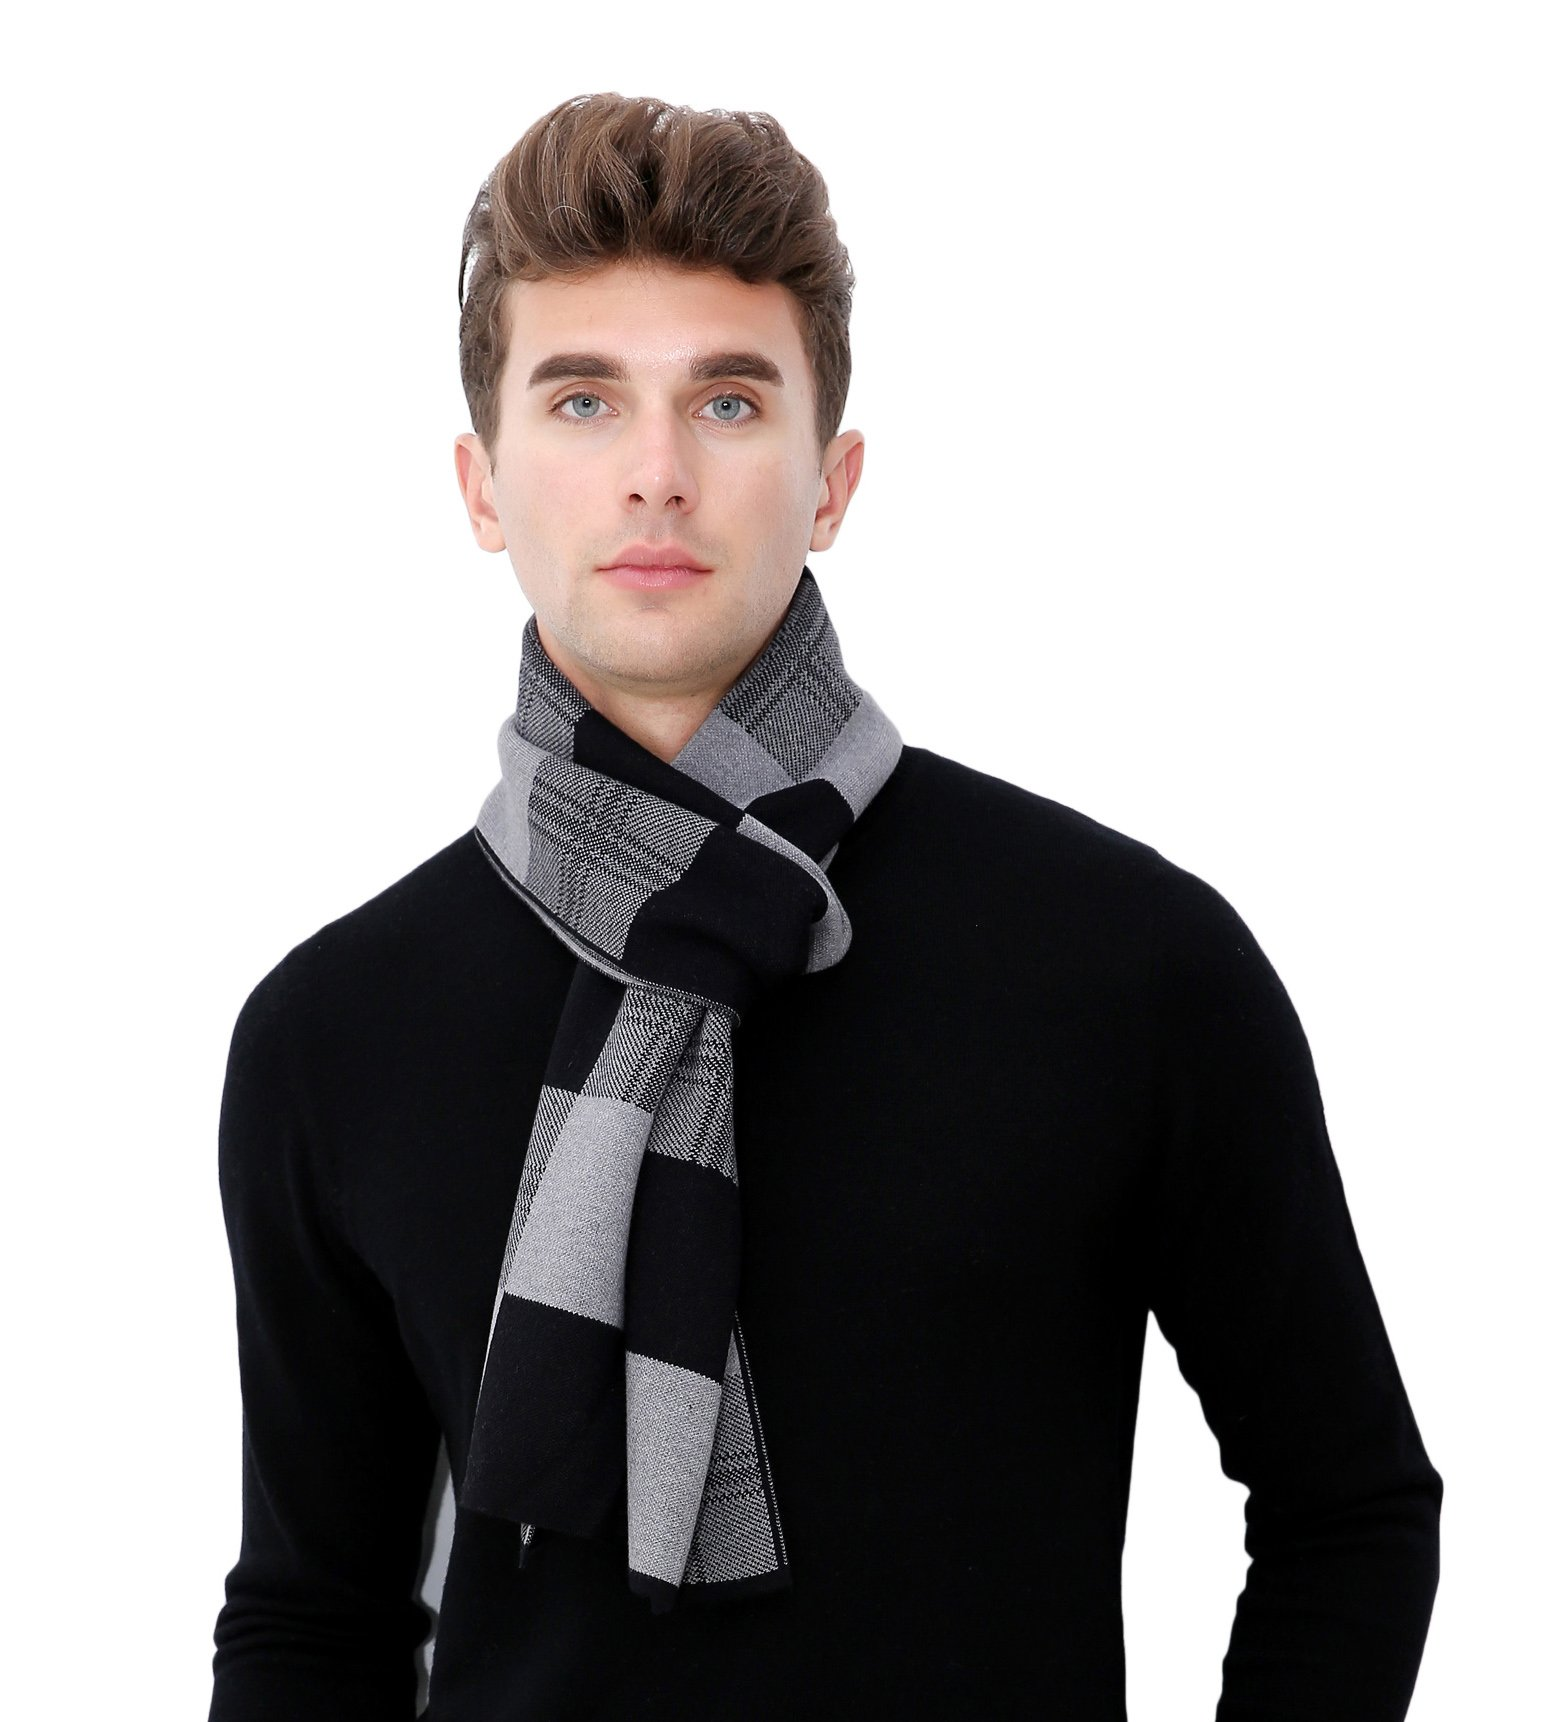 RIONA Men's Merino Wool Blend Plaid Knitted Scarf - Soft Warm Cashmere Feel Neckwear with Gift Box(Black Grey)